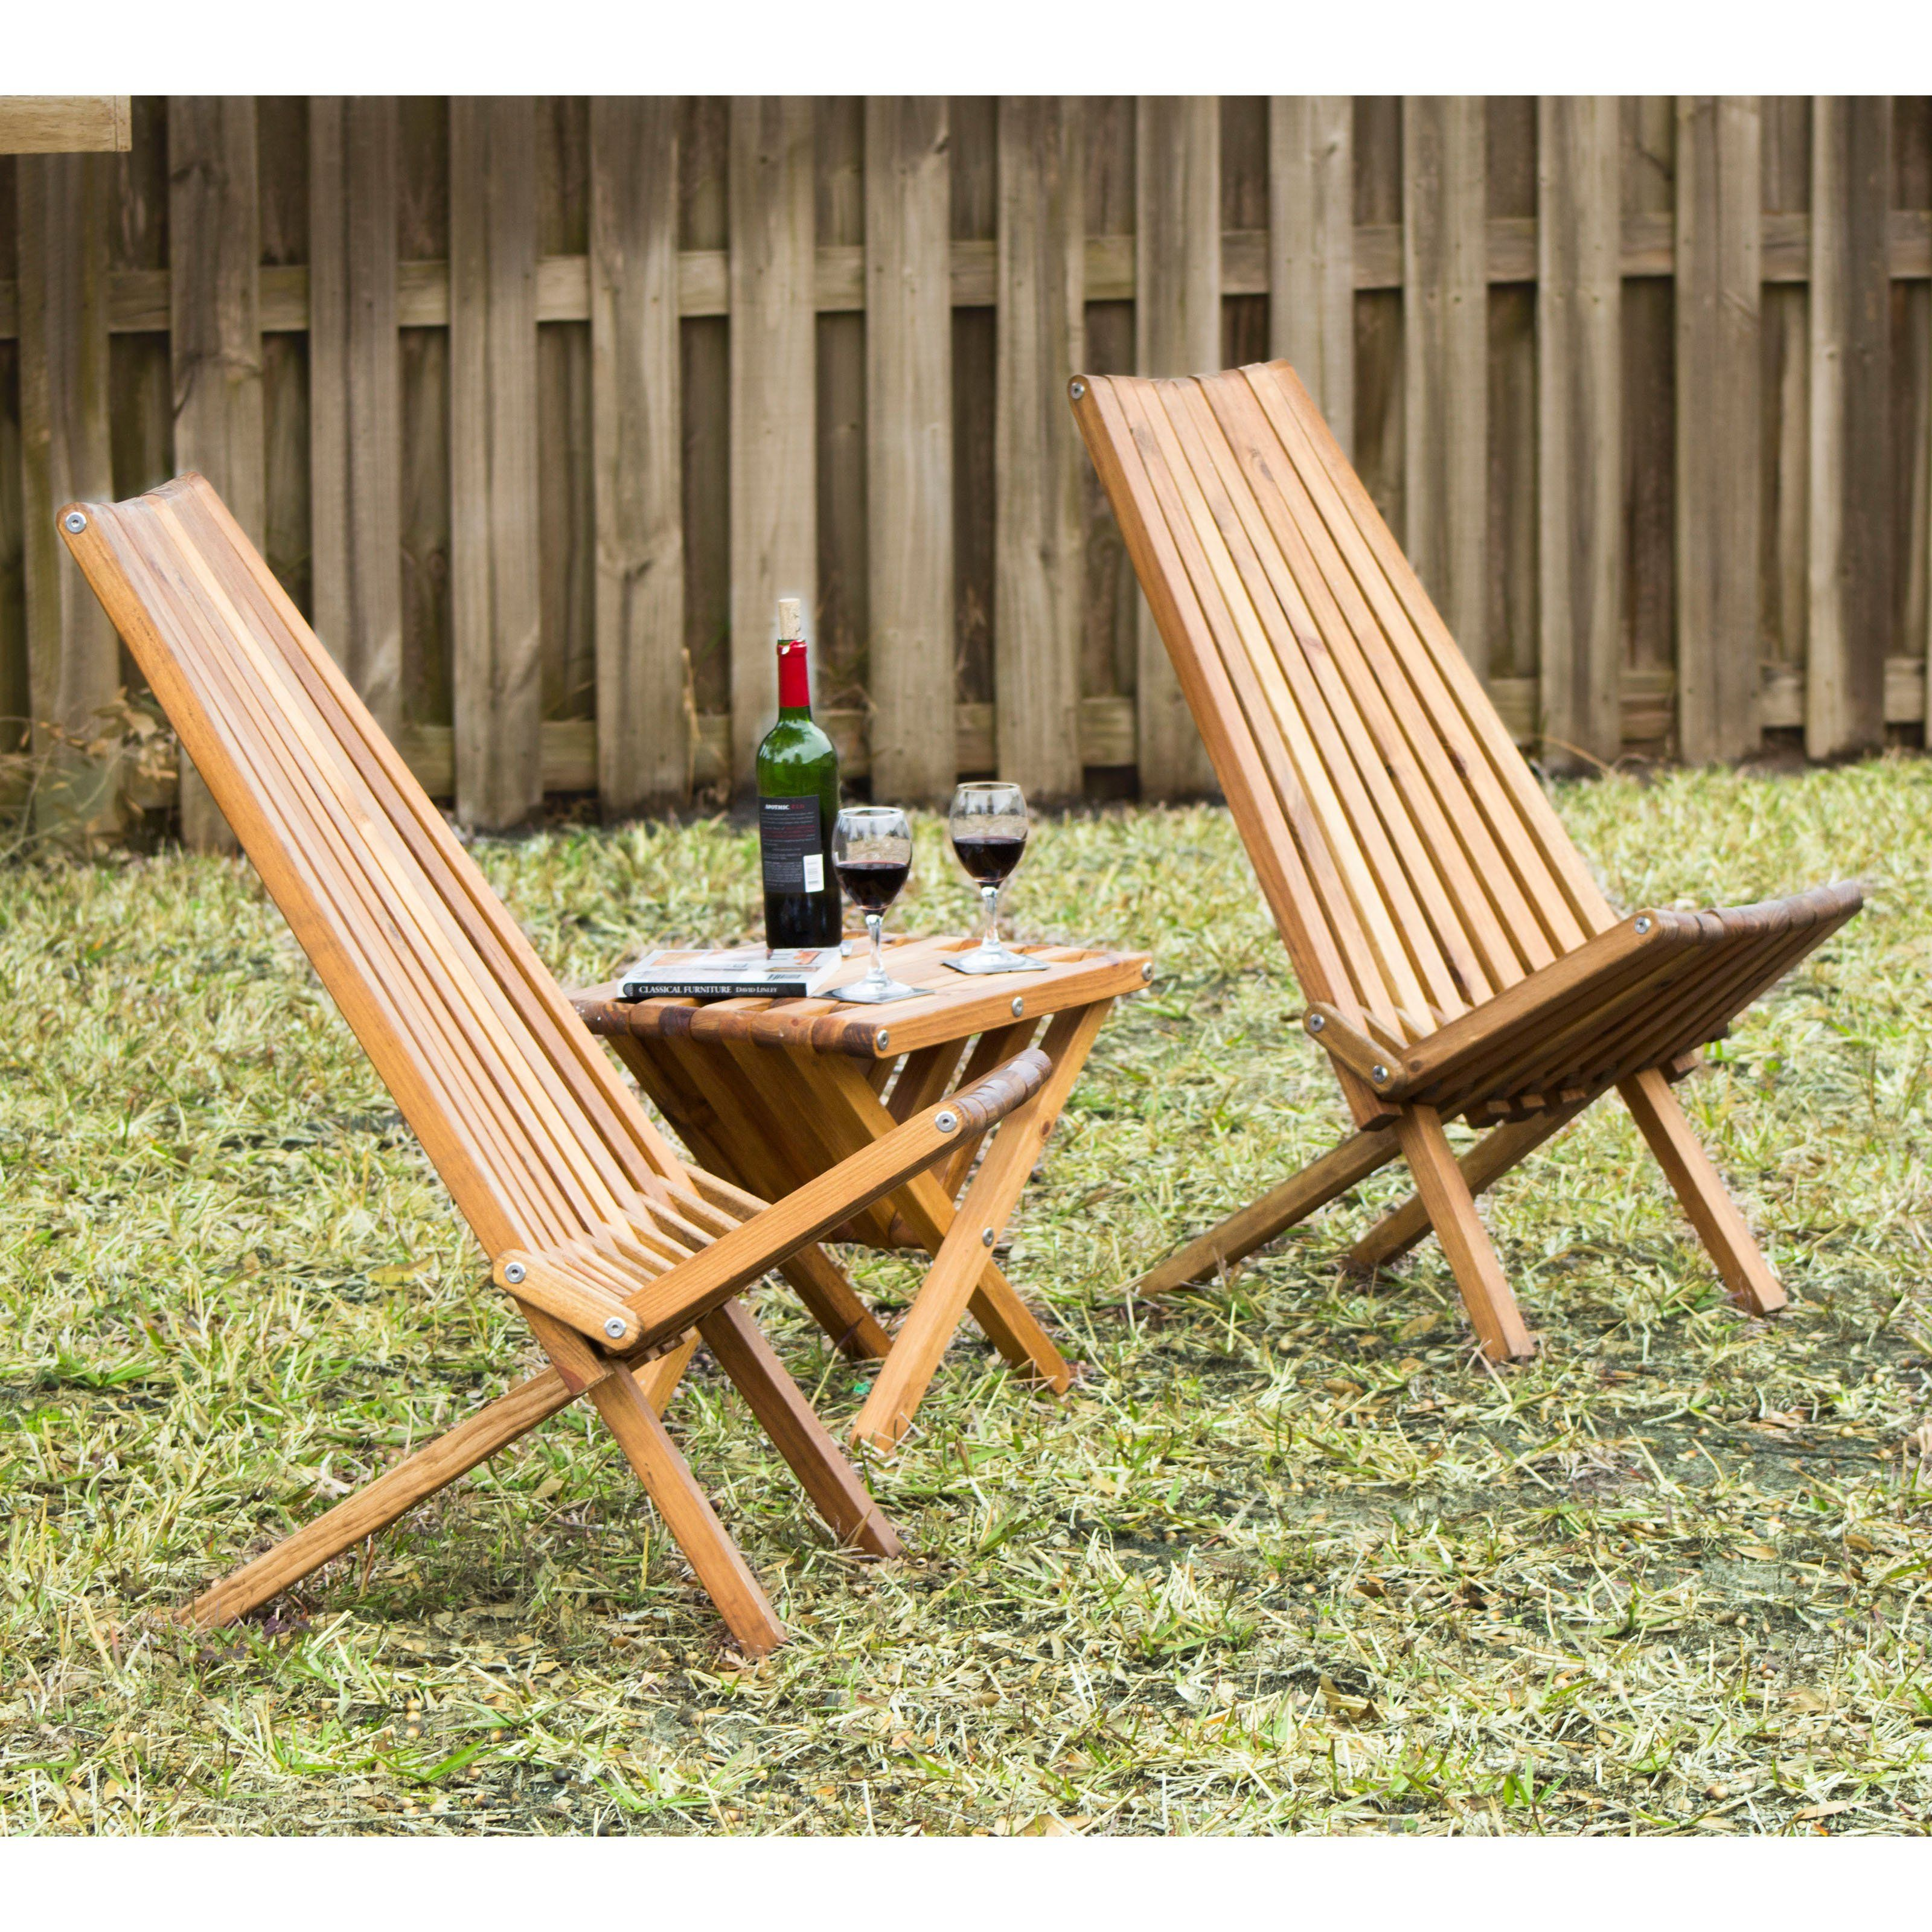 Outdoor Glodea Xquare X45 Foldable Wooden Tall Back Patio Lounge Chair Xqch45ypag Lounge Chair Outdoor Patio Lounge Chairs Patio Lounge